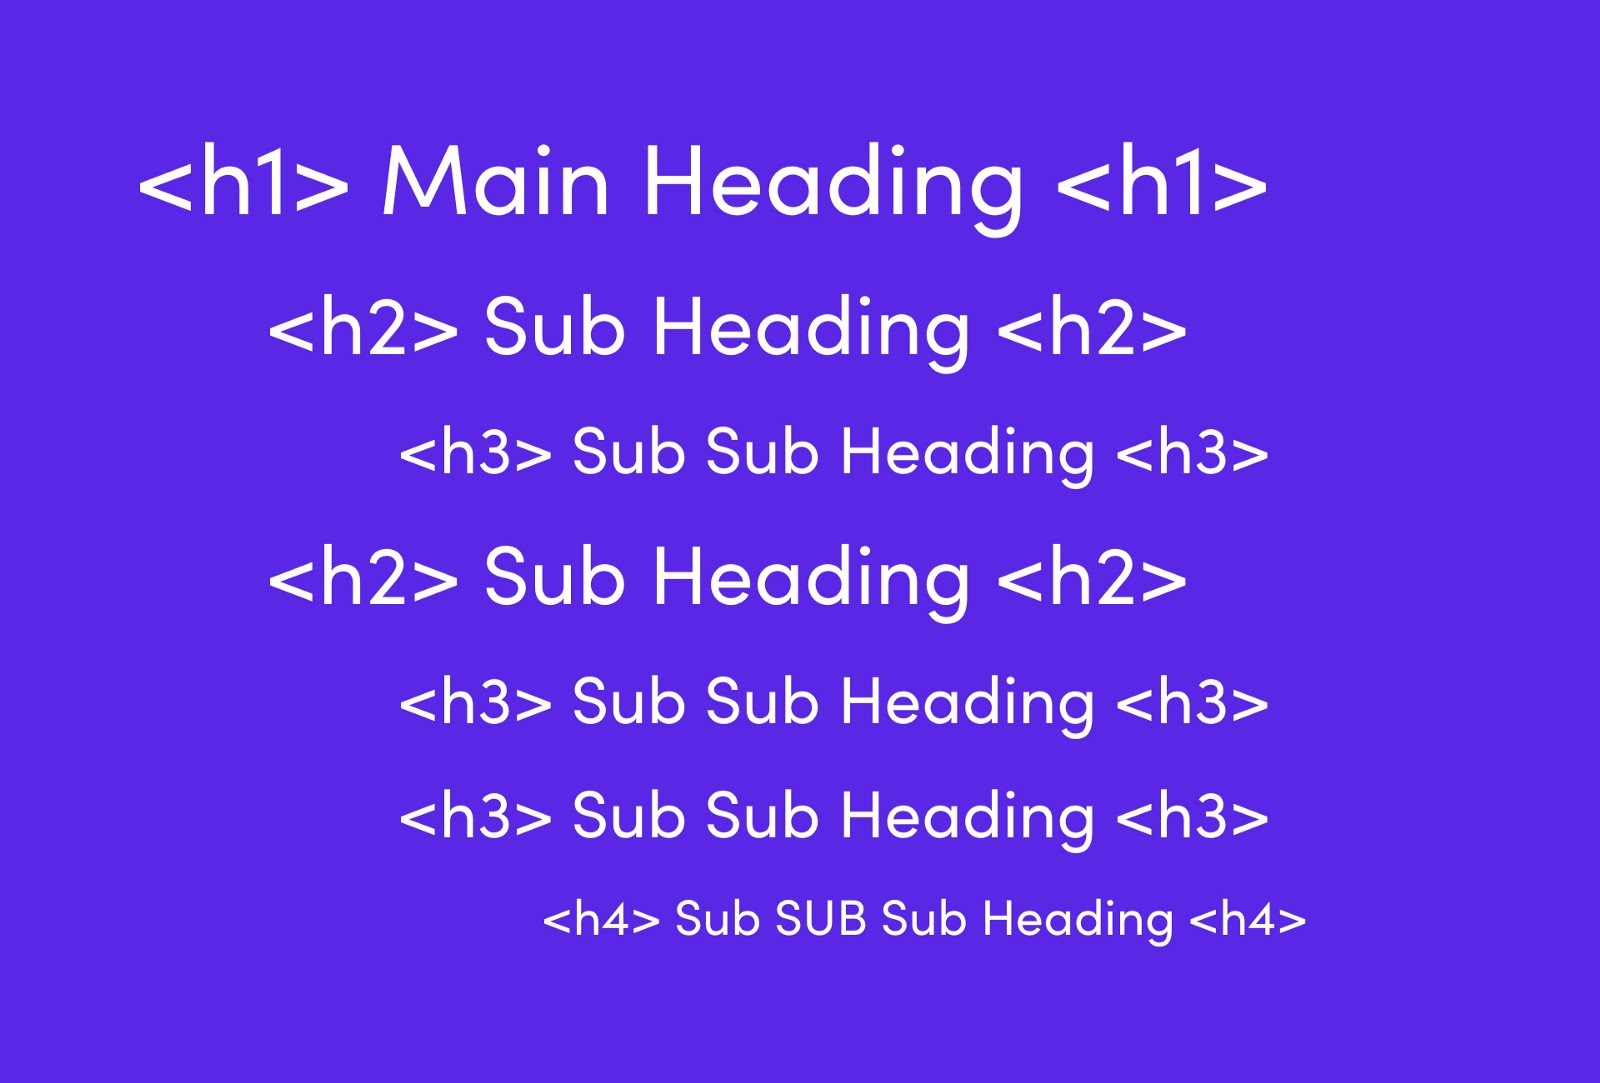 How to structure the HTML of a webpage correctly with proper H1, H2, H3, and H4 tags